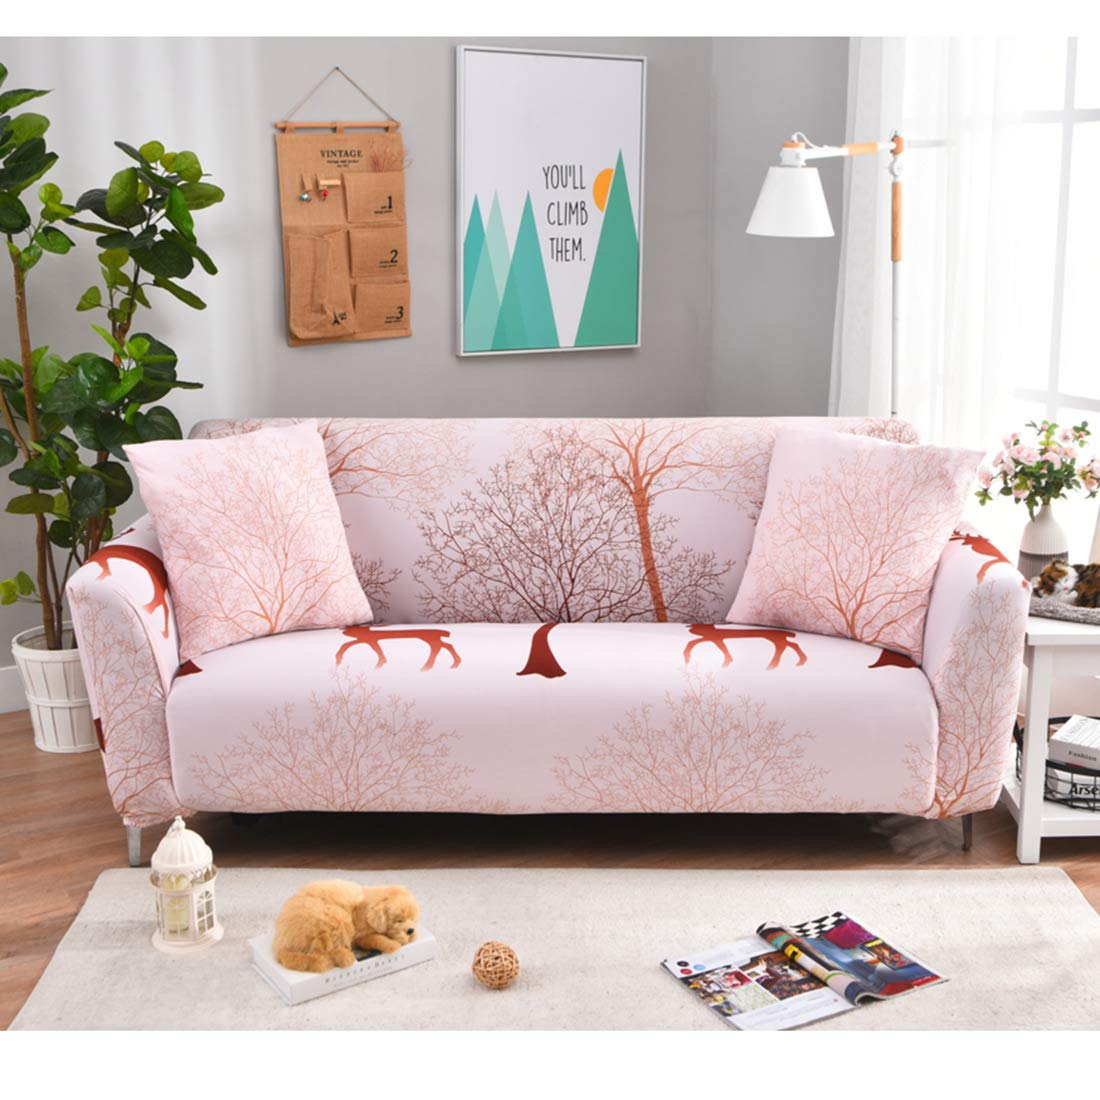 Royhom Sofa Cover, Loveseat Cover, Chair Cover, Elasticity Furniture Protector, Patchwork Cover, Stain Resistant, Machine Washable/Pink, Sofa Cover